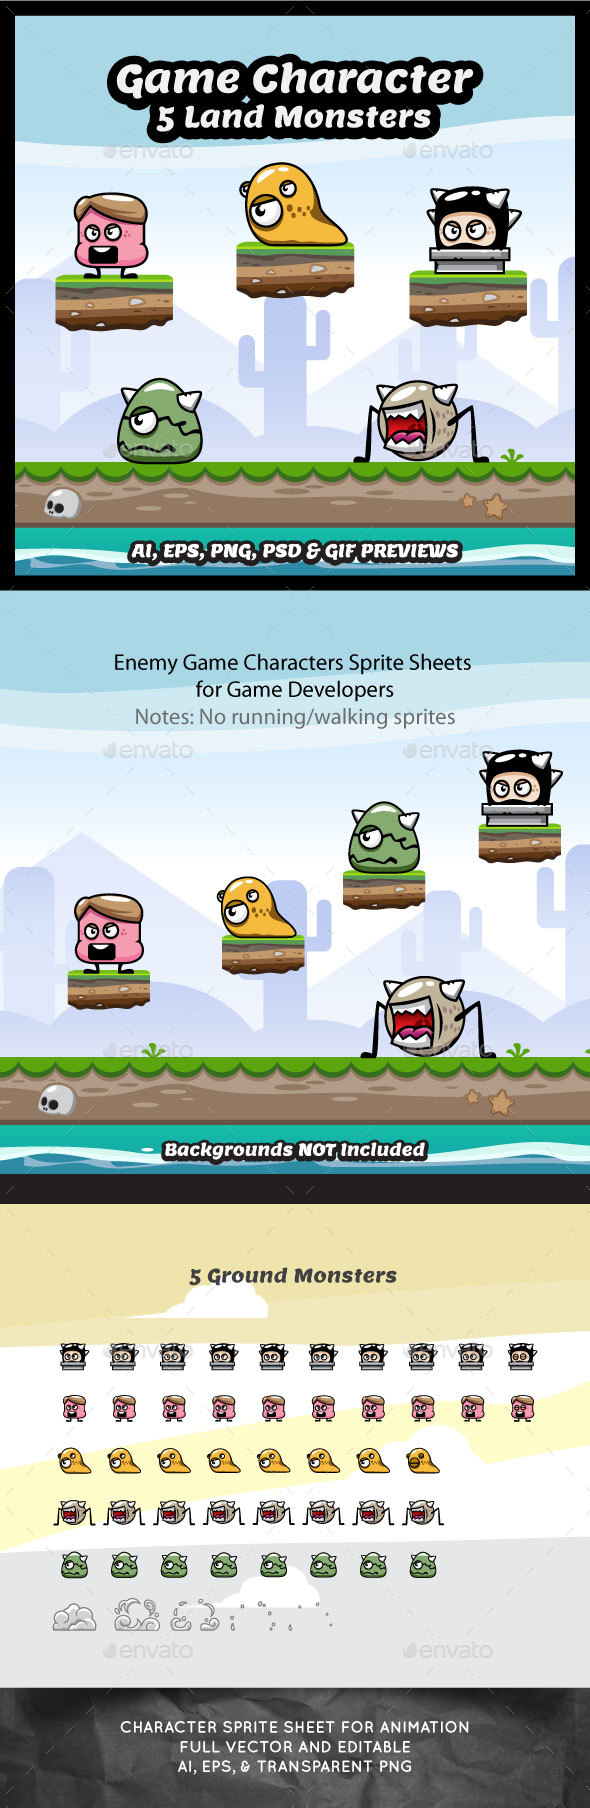 Enemy Game Character - 5 Land Monsters (Sprites)